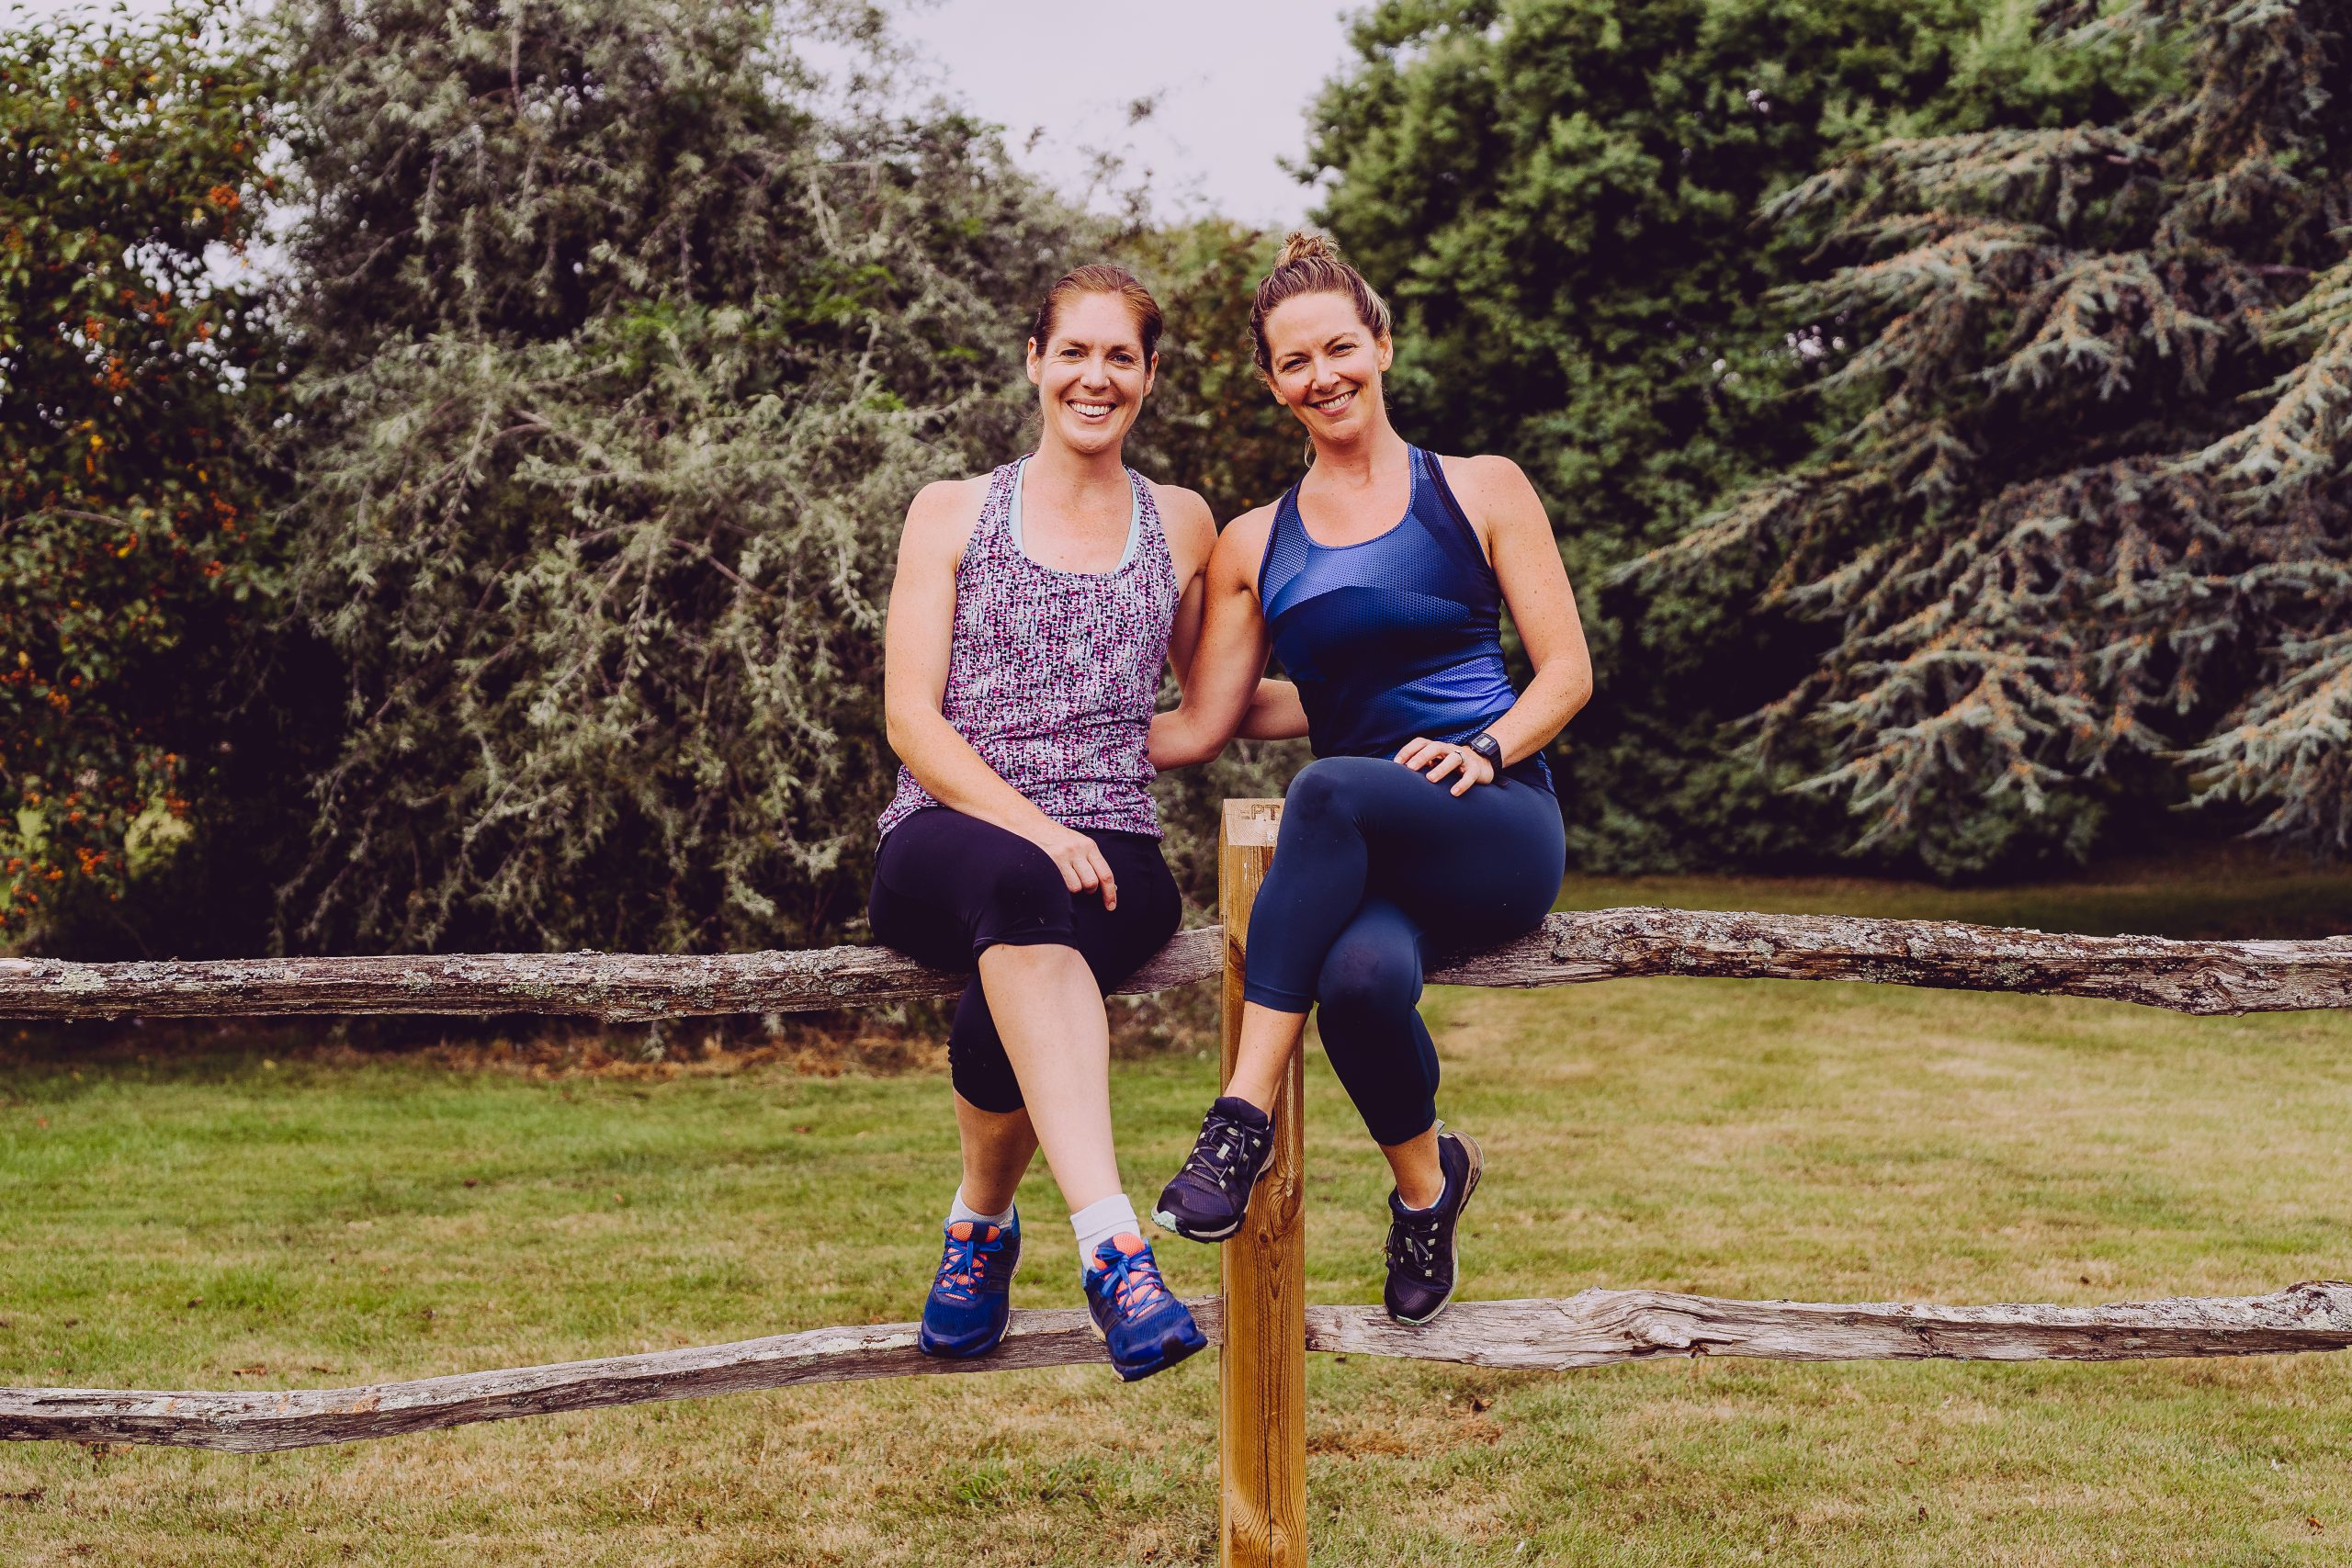 Cathryn and Sarah are the creators of the healthy business retreat